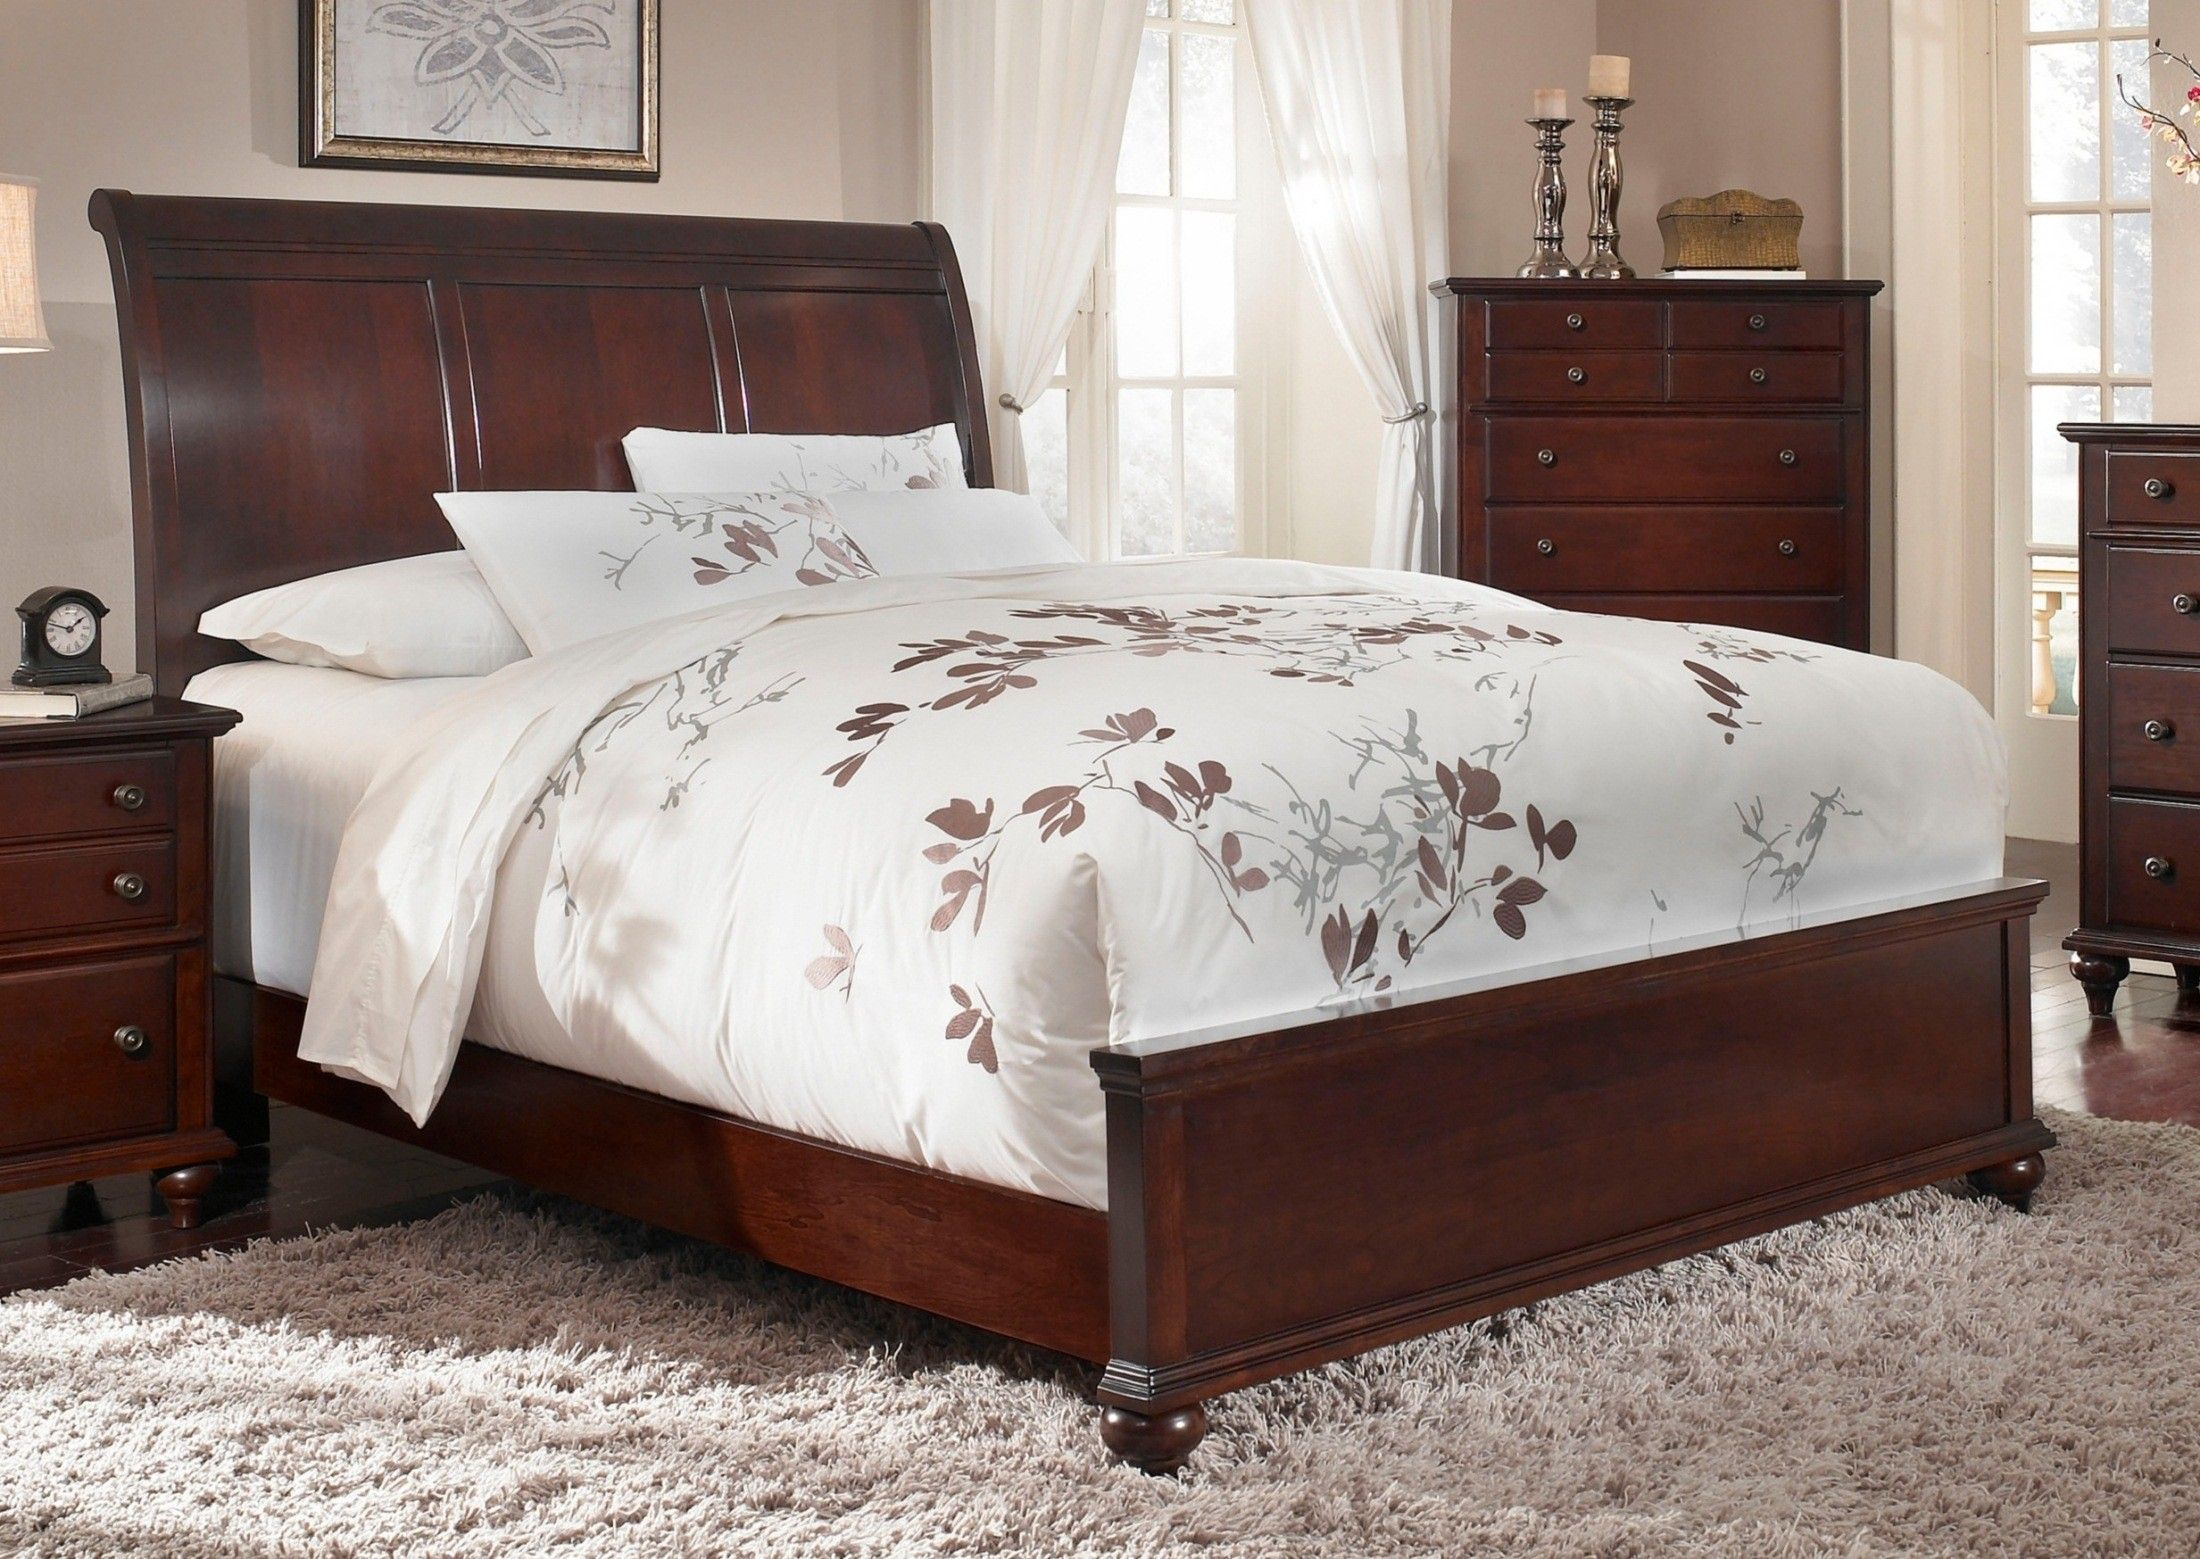 Hayden place dark cherry sleigh bed bed frames sleigh - Broyhill hayden place bedroom set ...